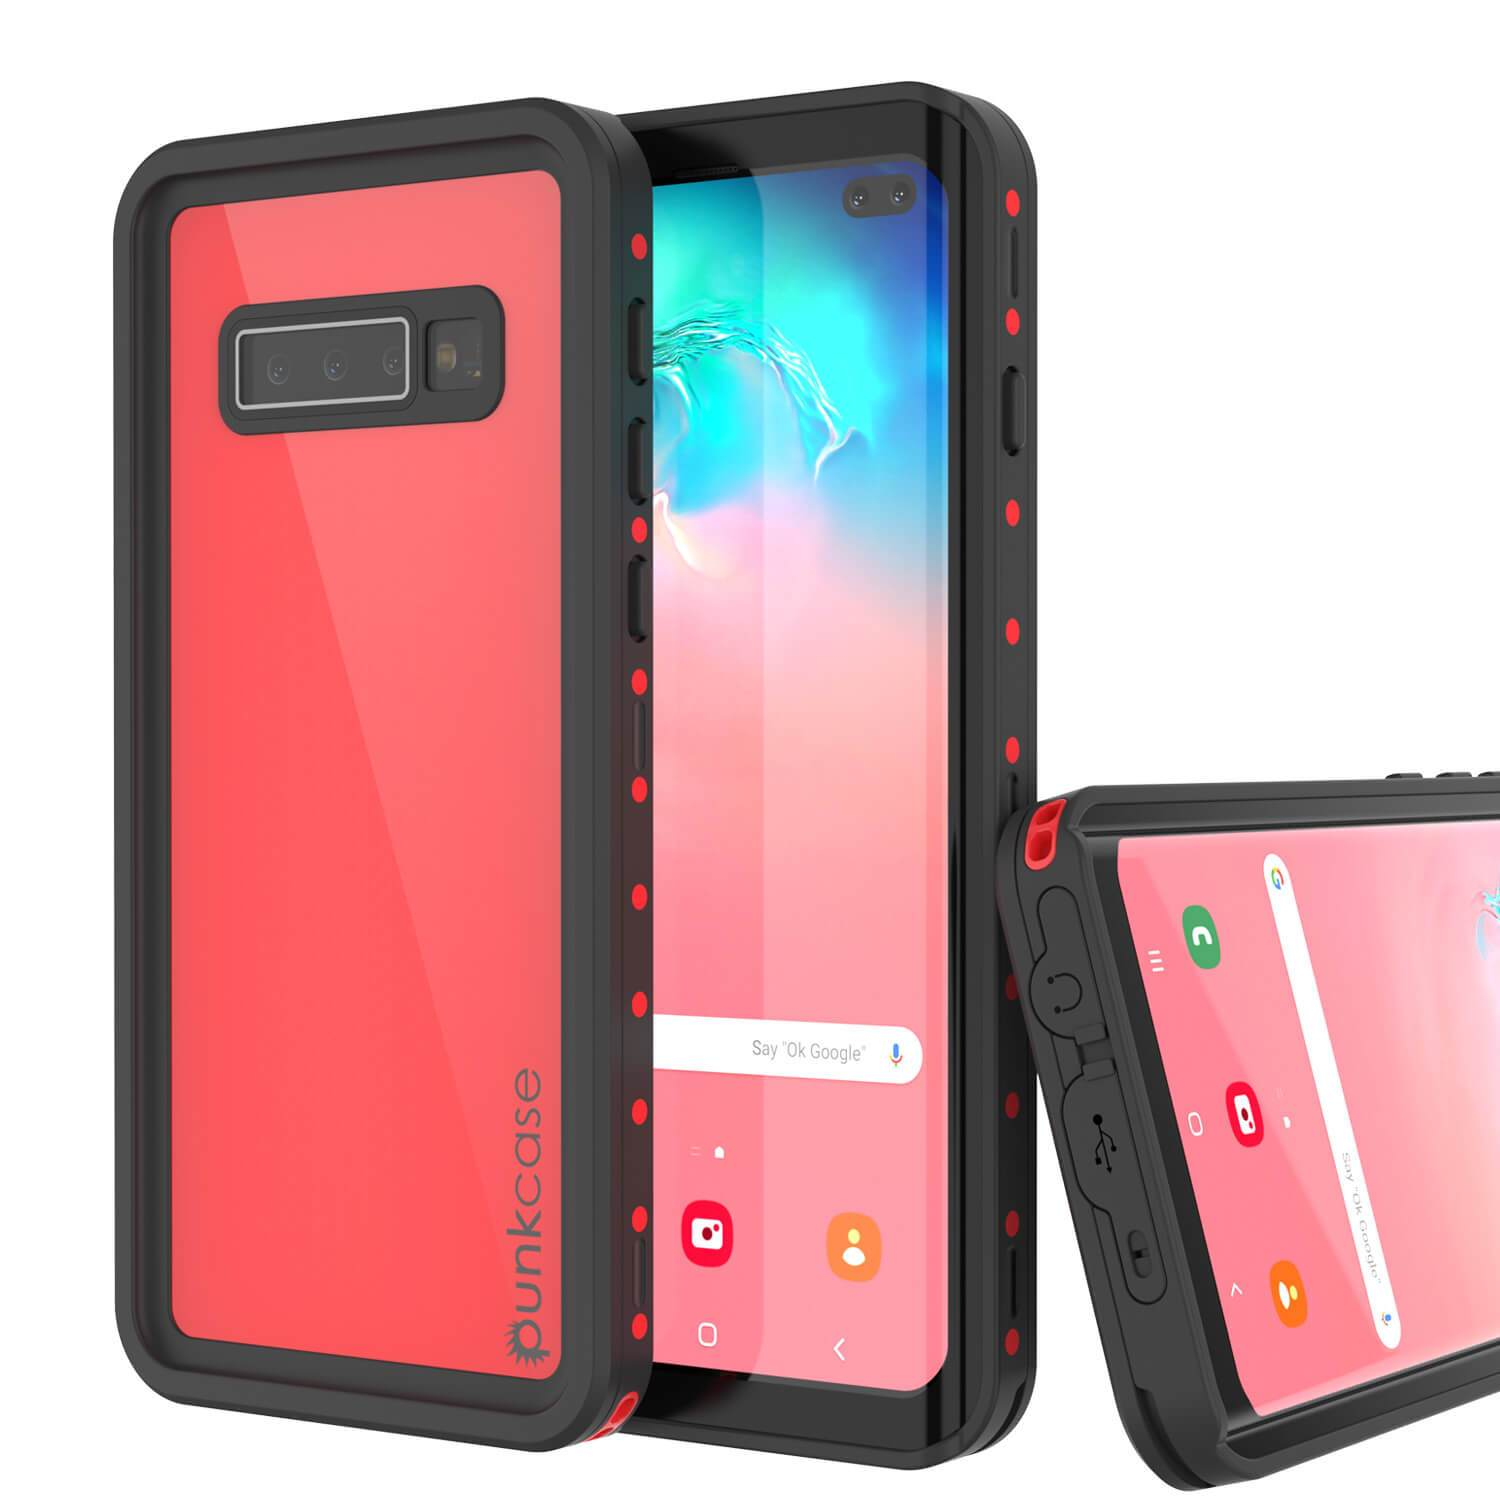 Galaxy S10+ Plus Waterproof Case PunkCase StudStar Red Thin 6.6ft Underwater IP68 Shock/Snow Proof